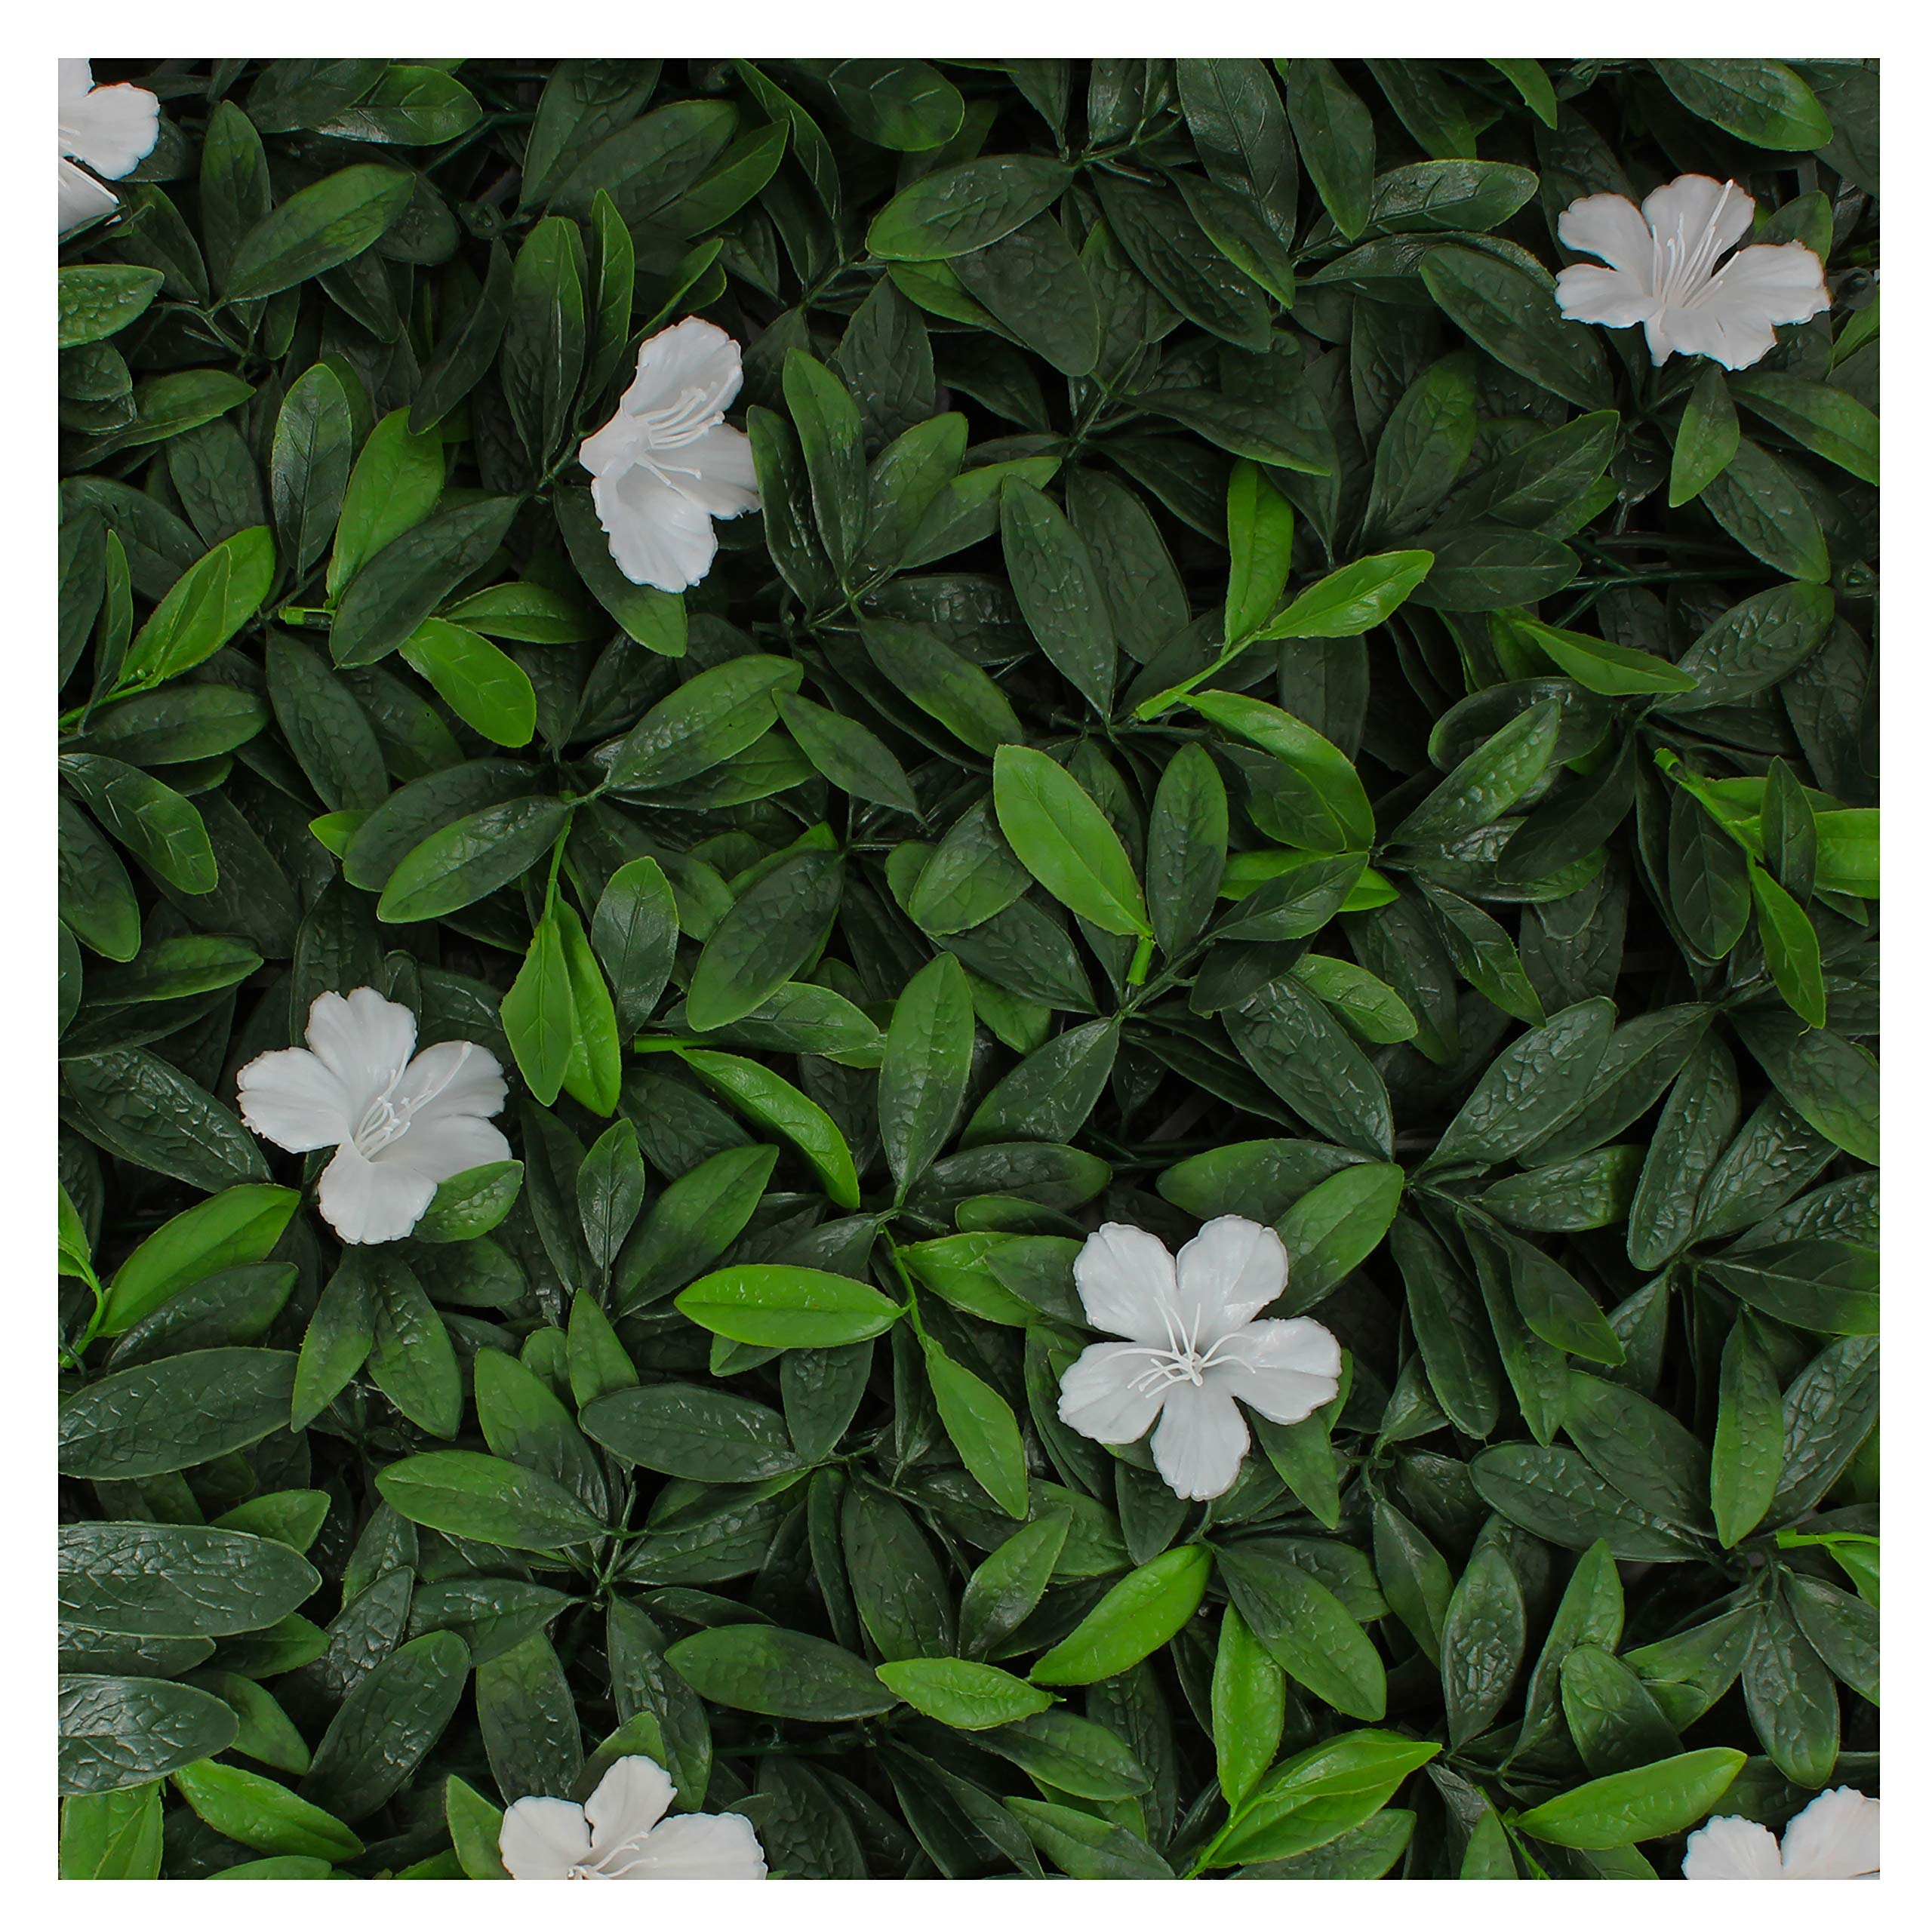 Milltown Merchants Artificial Hedge - Outdoor Artificial Plant - Great Boxwood and Ivy Substitute - Sound Diffuser Privacy Fence Hedge - Topiary Greenery Panels (12, White Cuckoo Flower) by Milltown Merchants